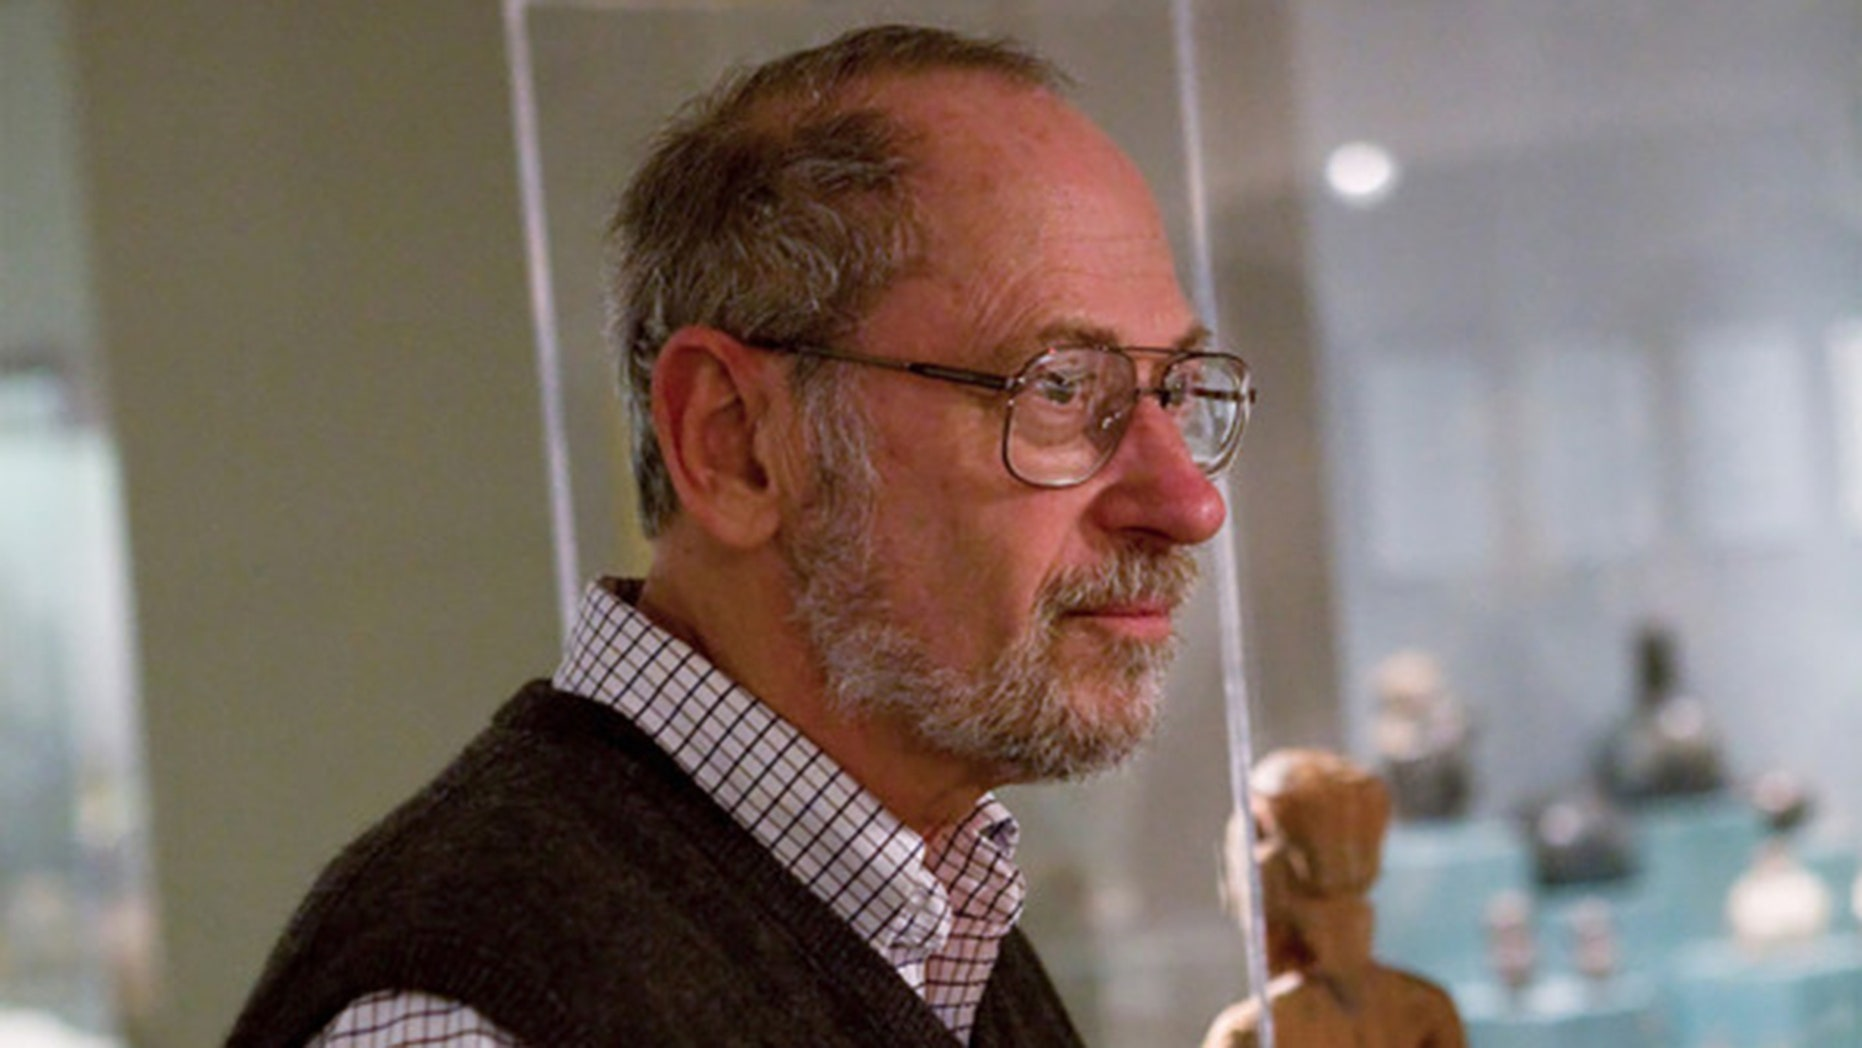 Princeton professor Lawrence Rosen sparked controversy after using the n-word during a recent lecture.